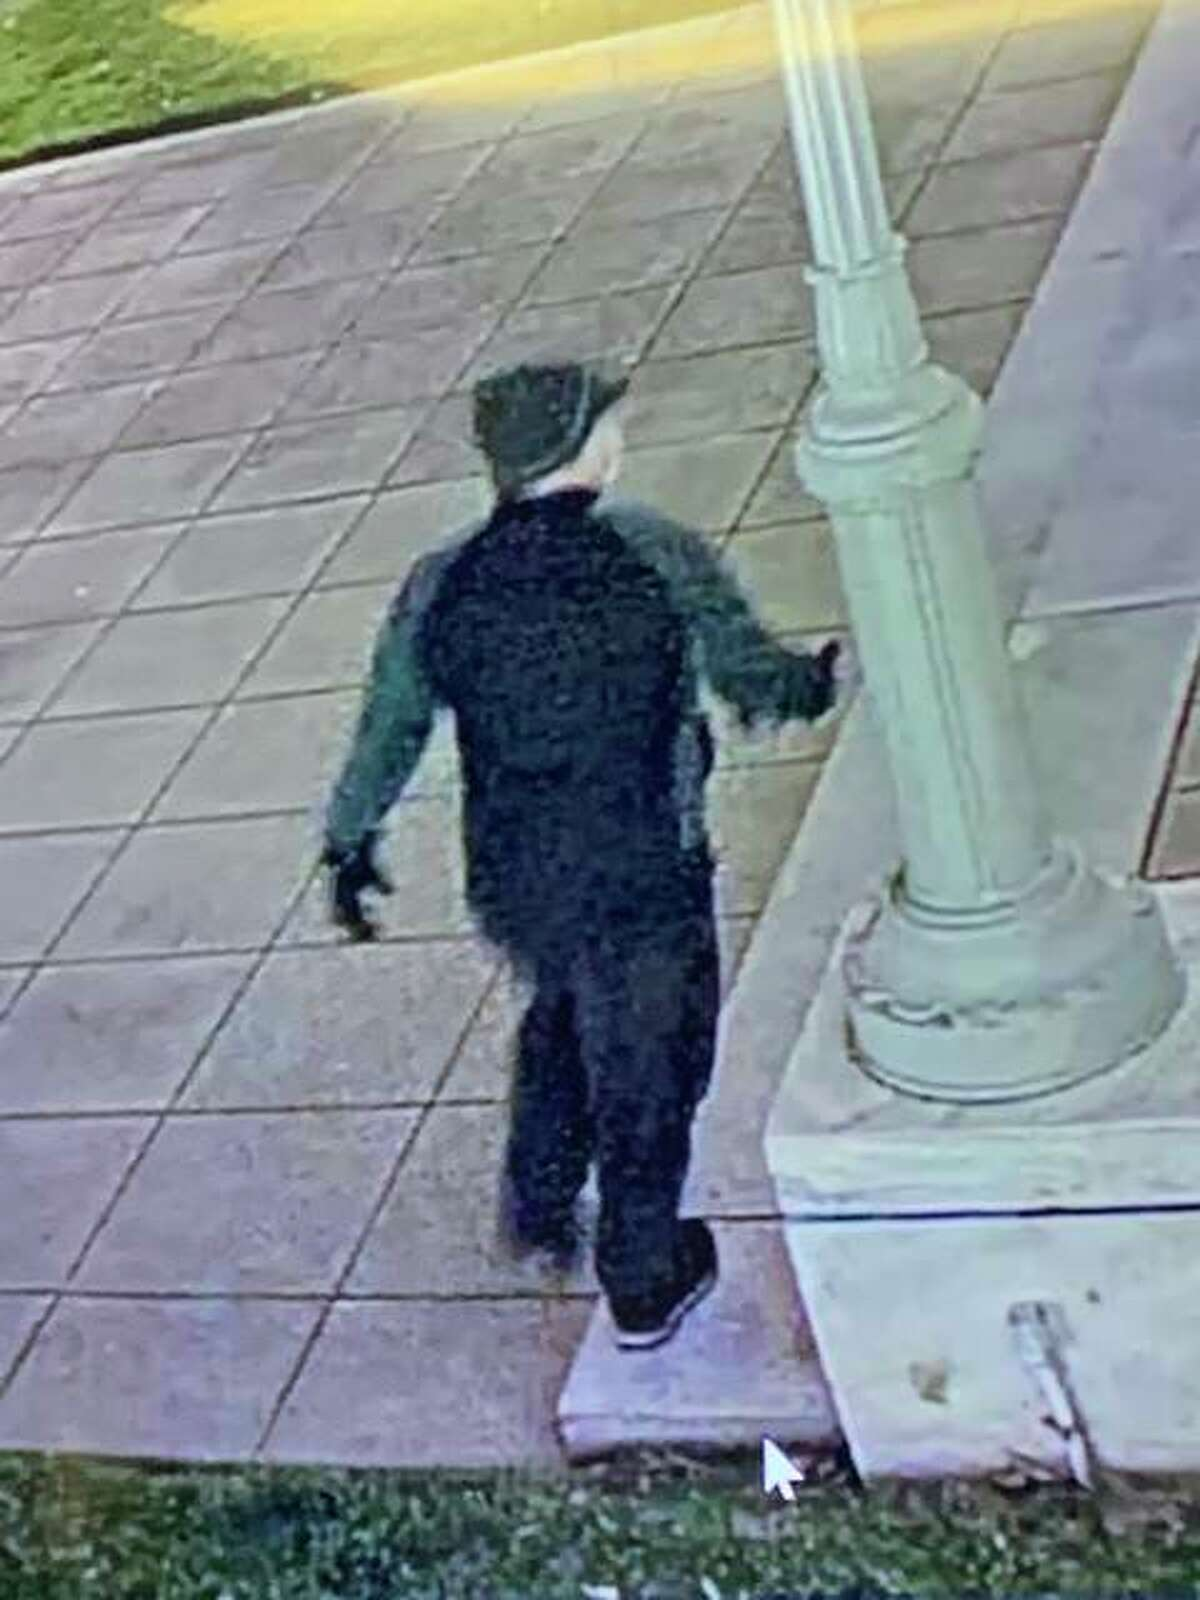 The Edwardsville Police Department is seeking assistance with identifying a subject in an ongoing investigation. At about 4:25 a.m. Friday, Nov. 6, the Madison County Court House at 155 N. Main St., Edwardsville, was damaged by someone spray painting the outside of the building. The building sustained